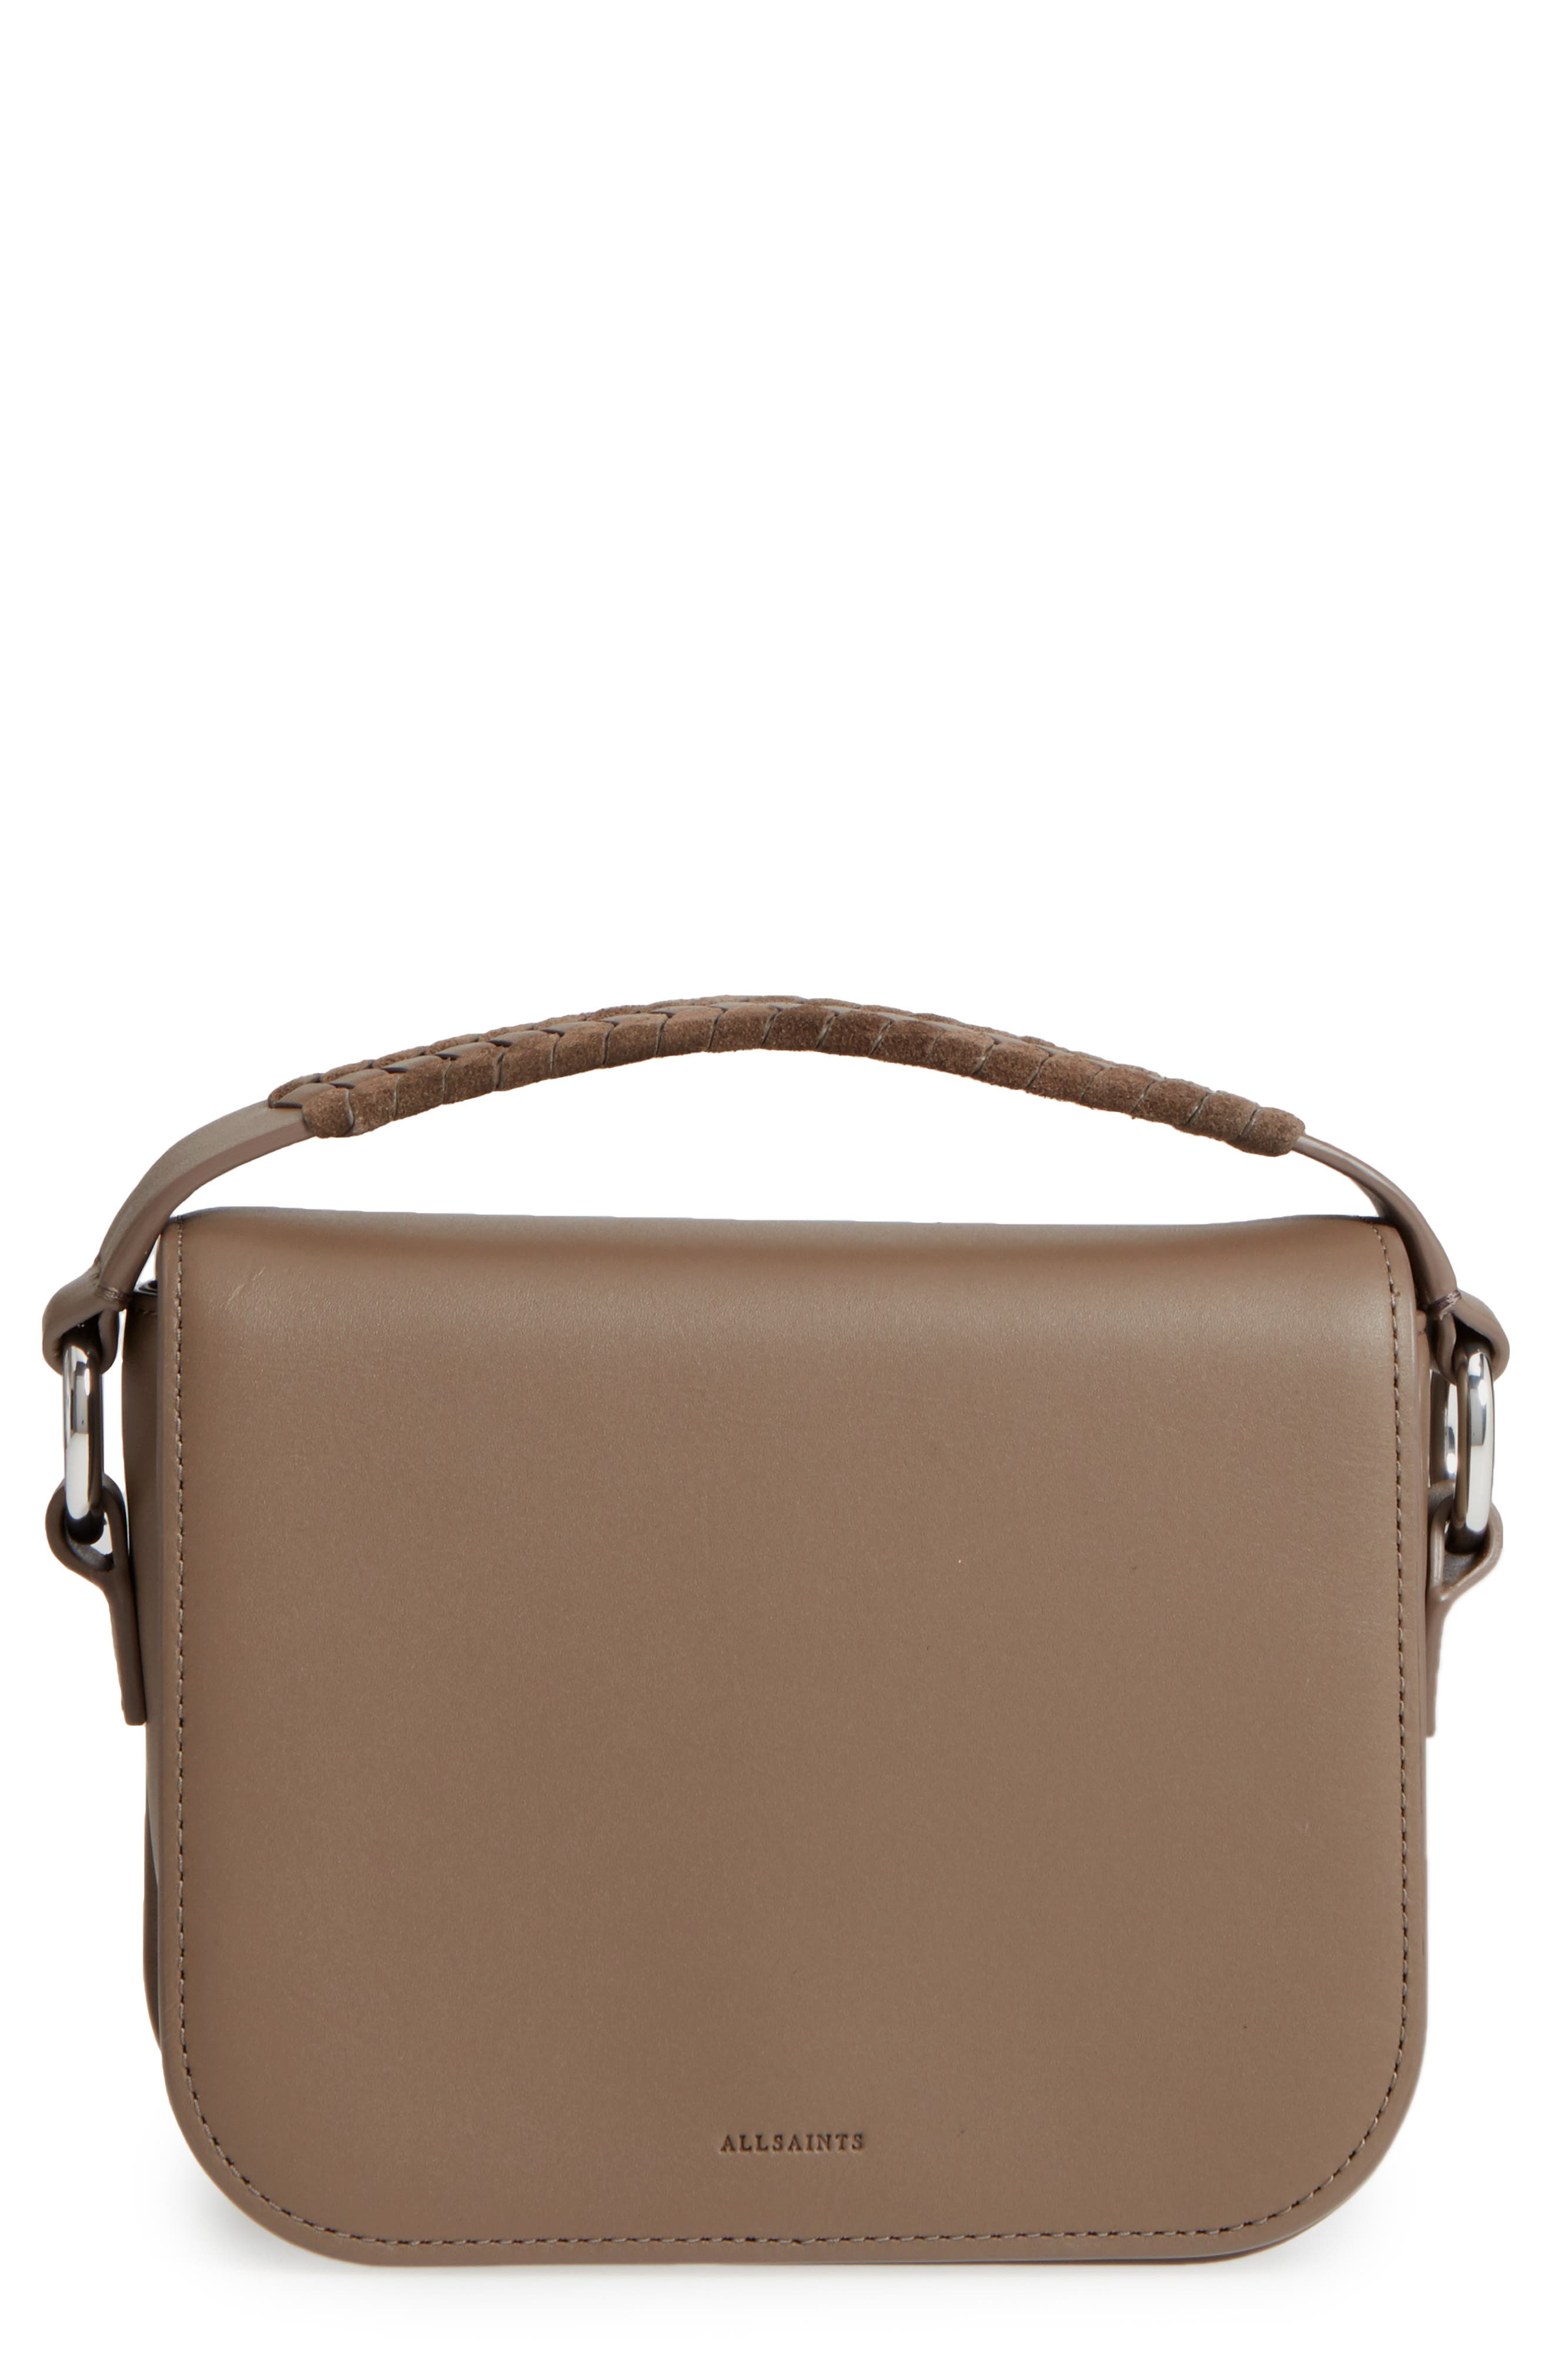 Ray Leather Clutch,                             Main thumbnail 1, color,                             200